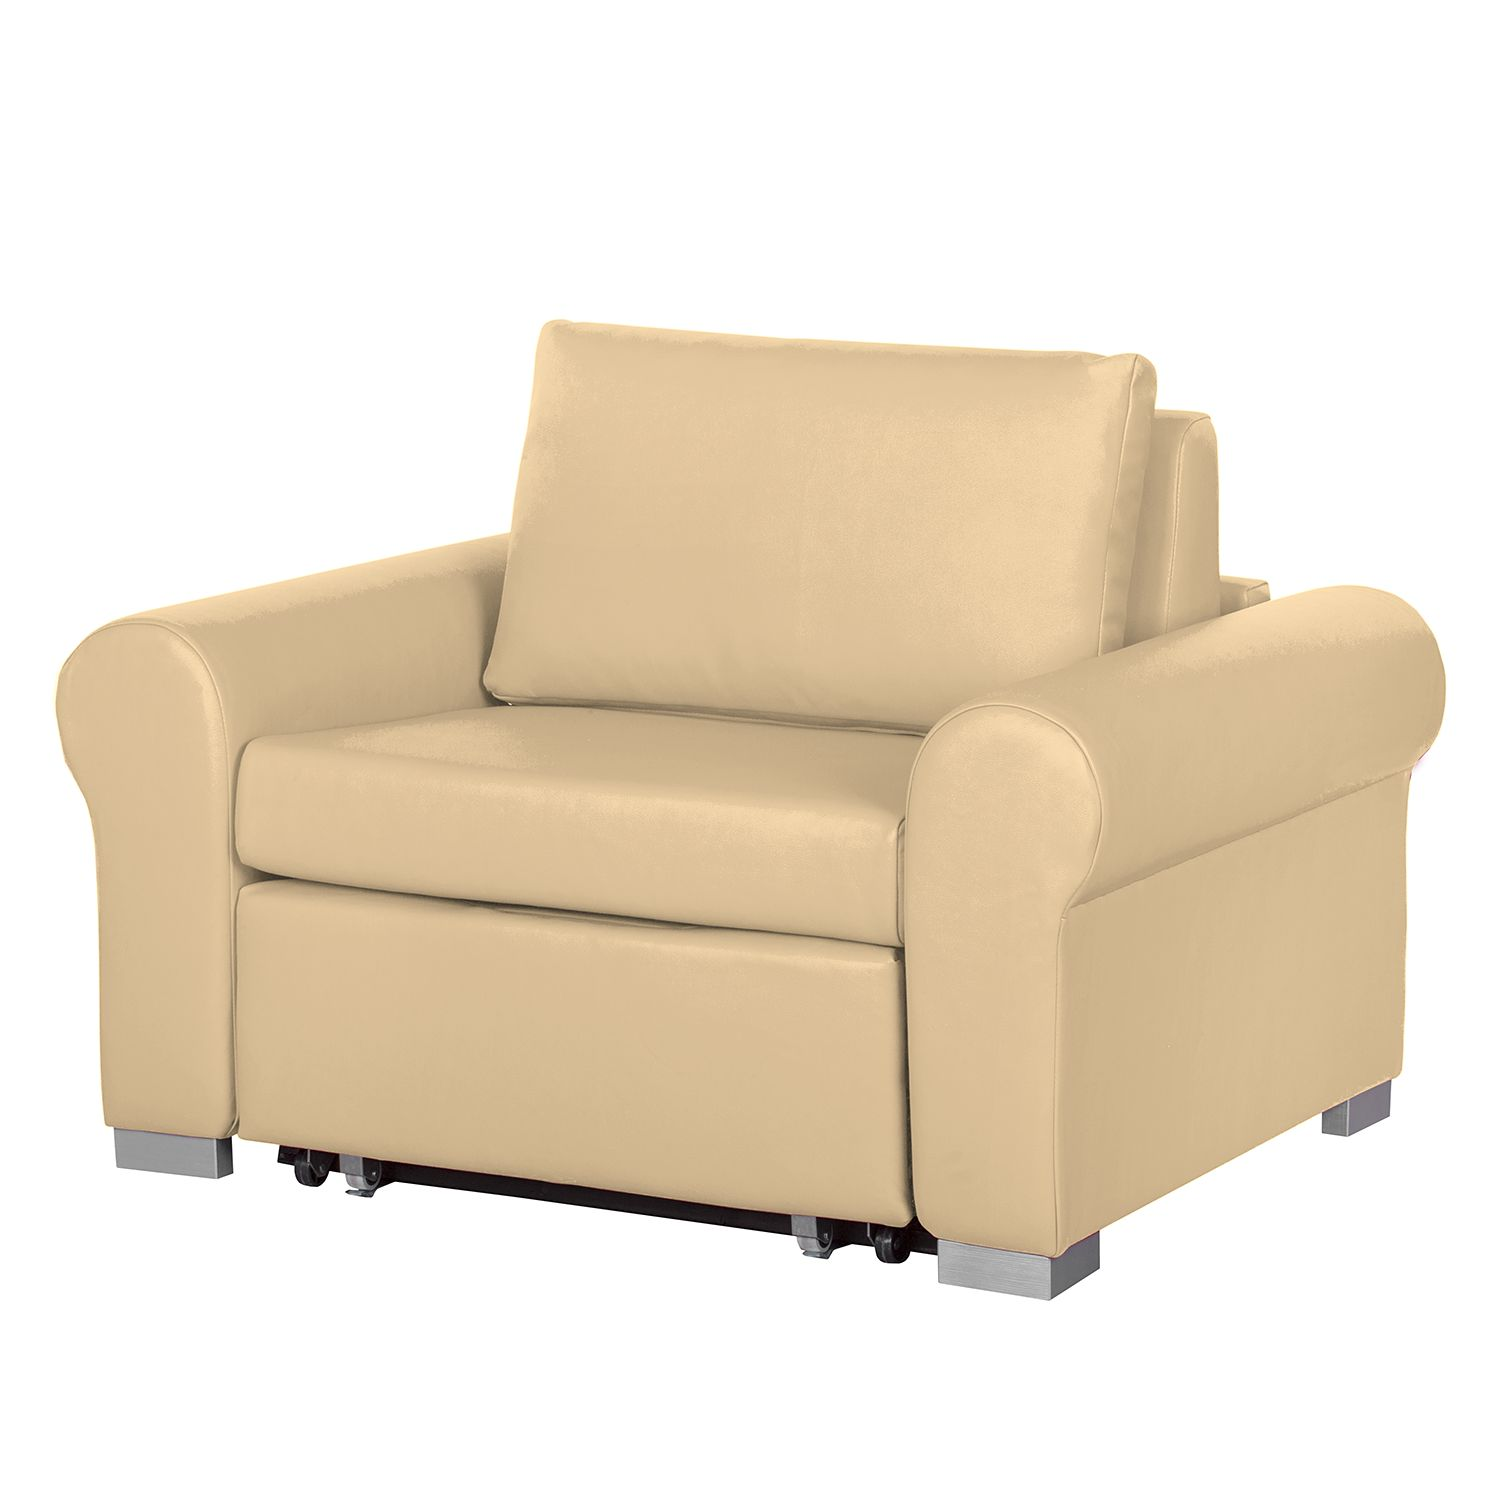 Fauteuil convertible Latina II - Imitation cuir - Beige, mooved